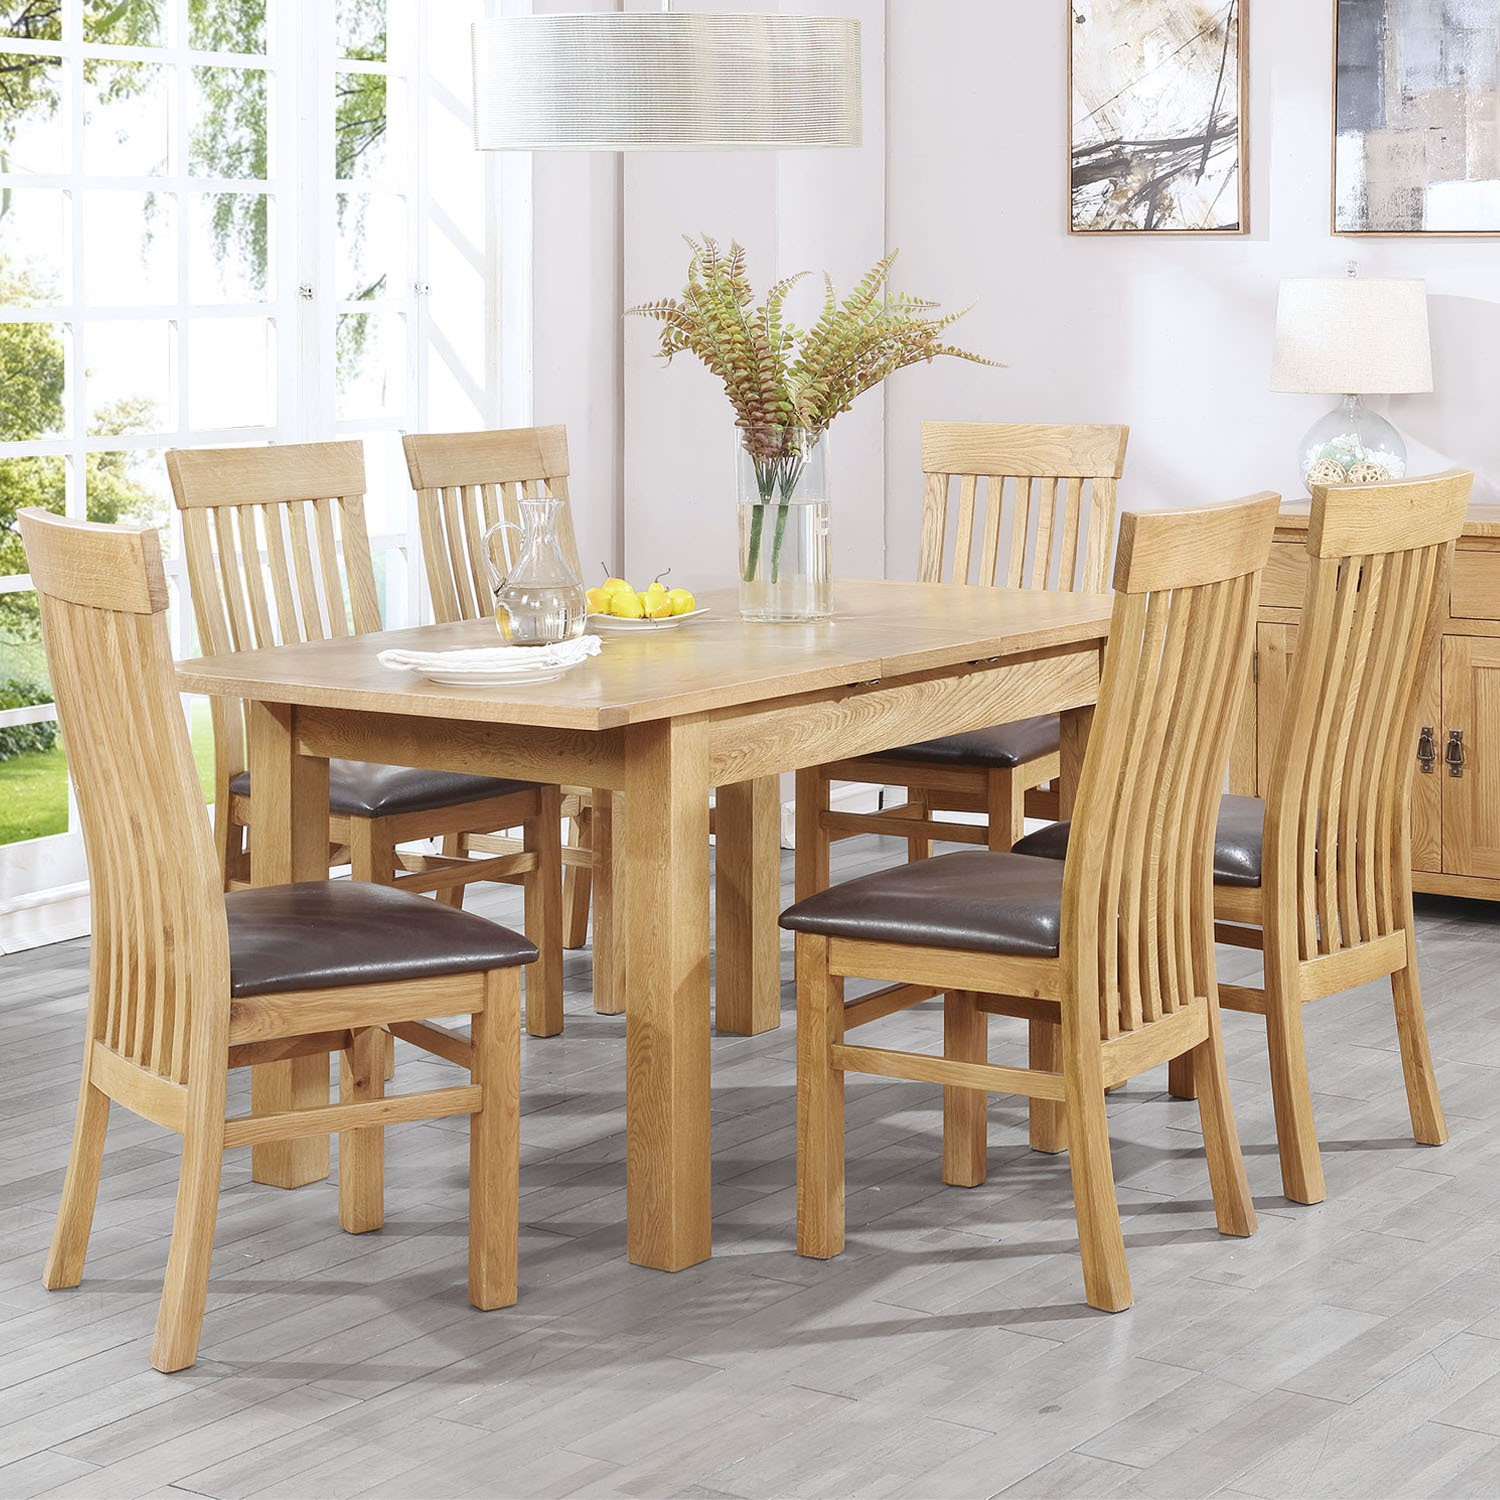 Extendable Solid Oak Dining Table And 6 Chairs Rustic Saxon Range Buyitdirect Ie